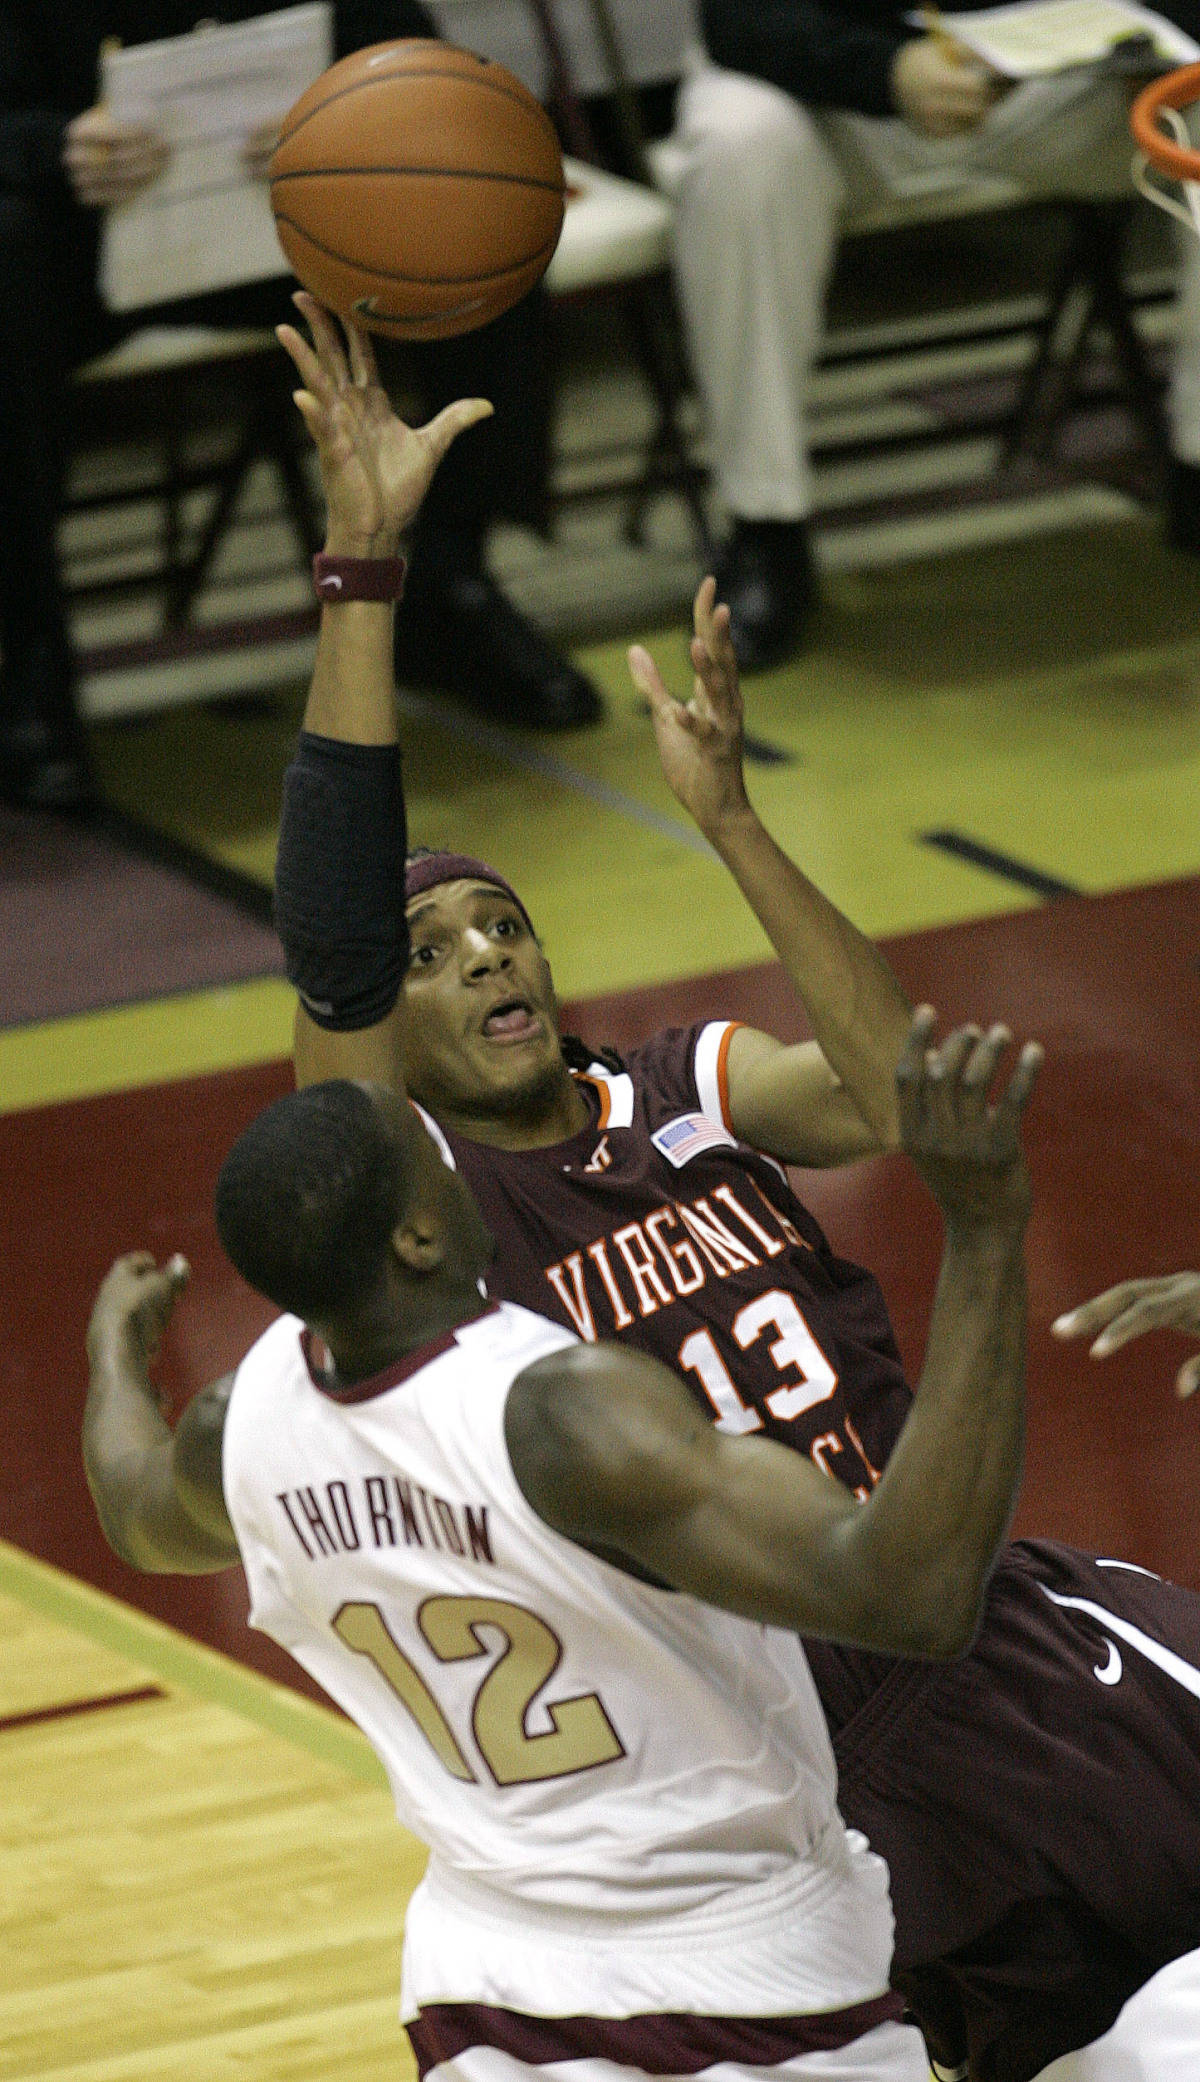 Virginia Tech's Deron Washington, right, shoots as Florida State's Al Thornton defends during the first half of a college basketball game, Wednesday, Jan. 17, 2007, in Tallahassee, Fla. (AP Photo/Phil Coale)